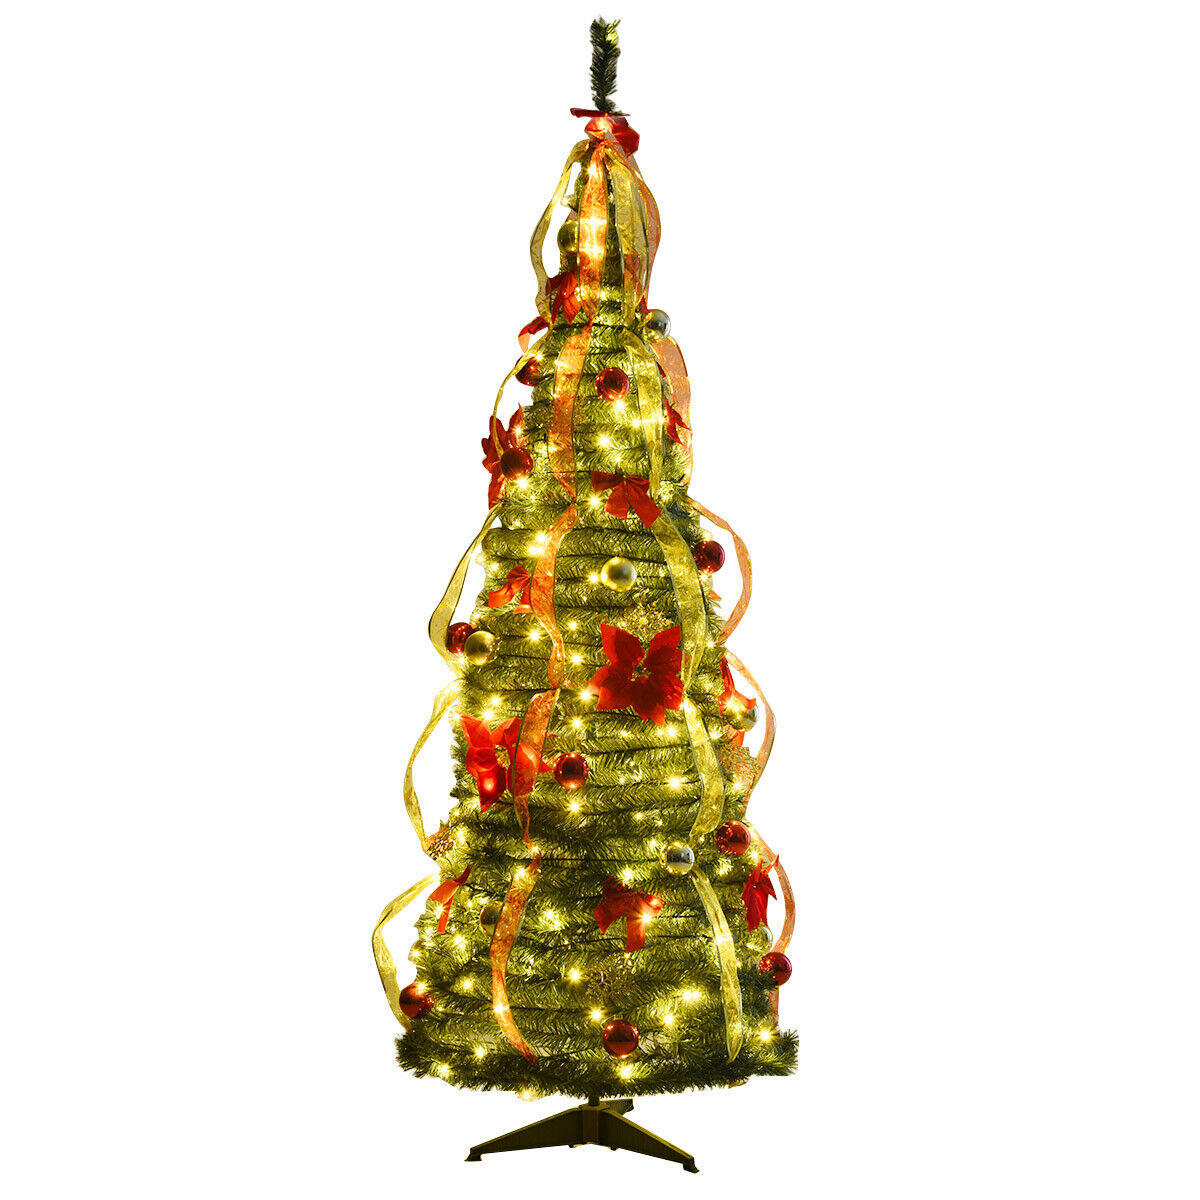 6ft Pre-Lit Christmas Tree Fully Decorated Pull Up Tree ...